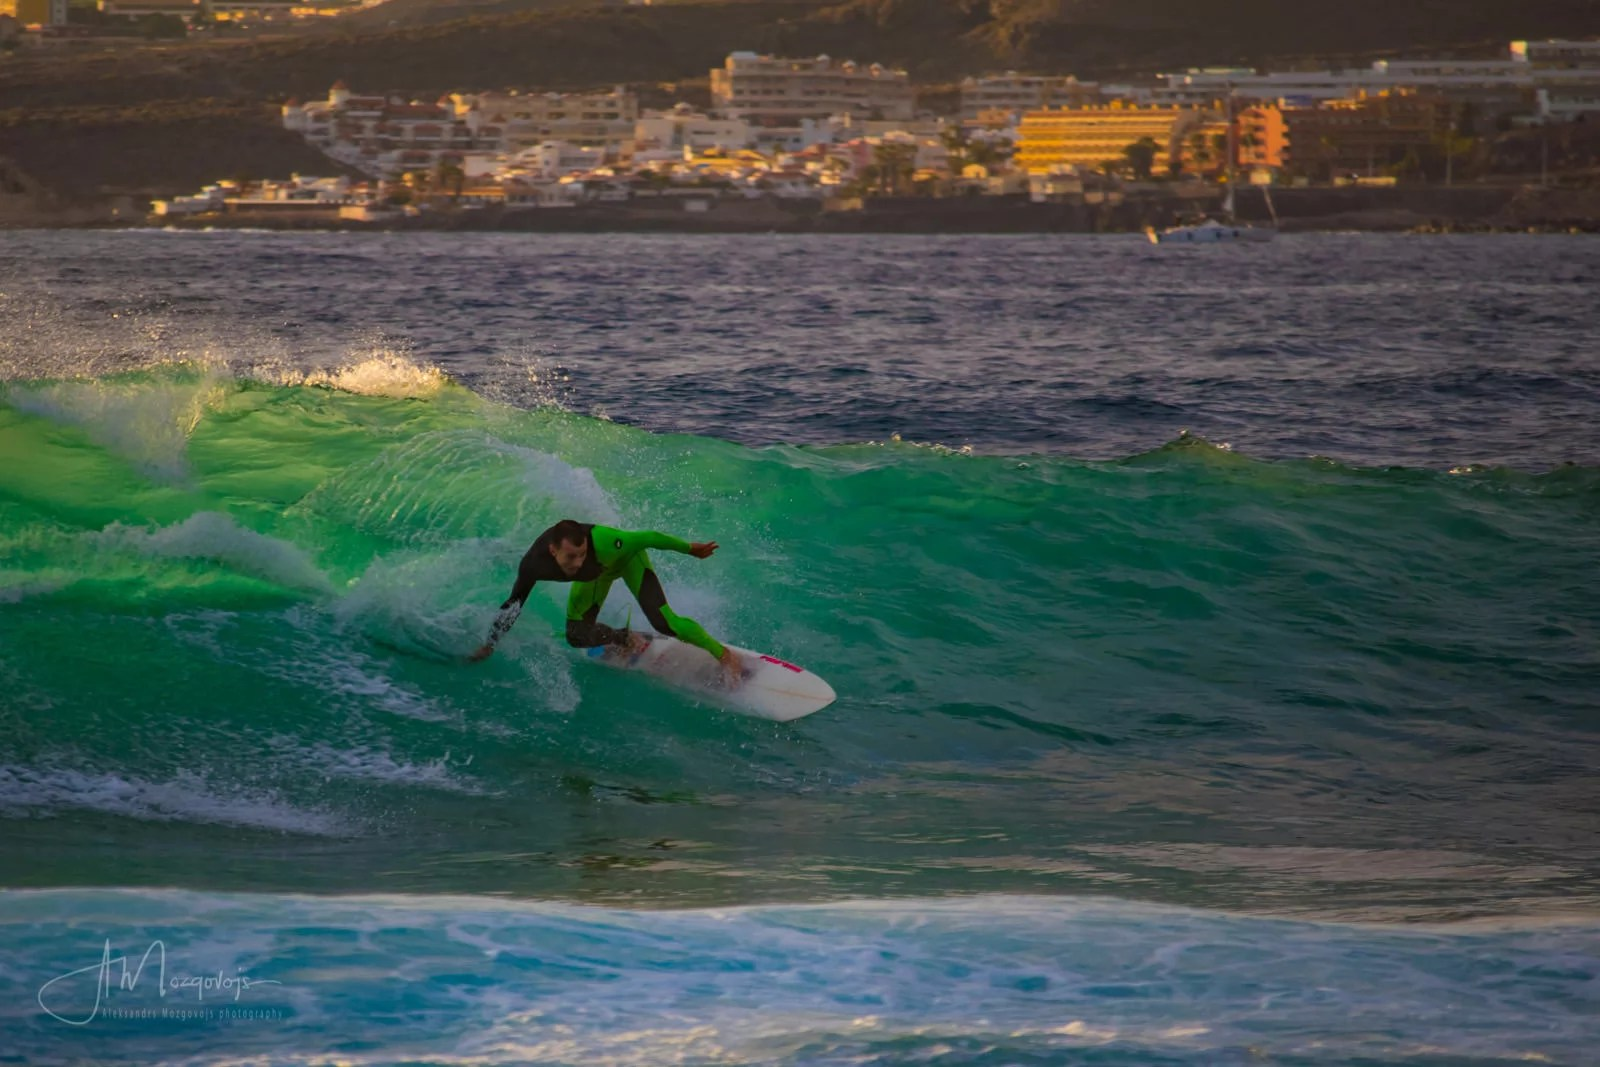 A surfer at Las Americas beach in Tenerife, Canary Islands